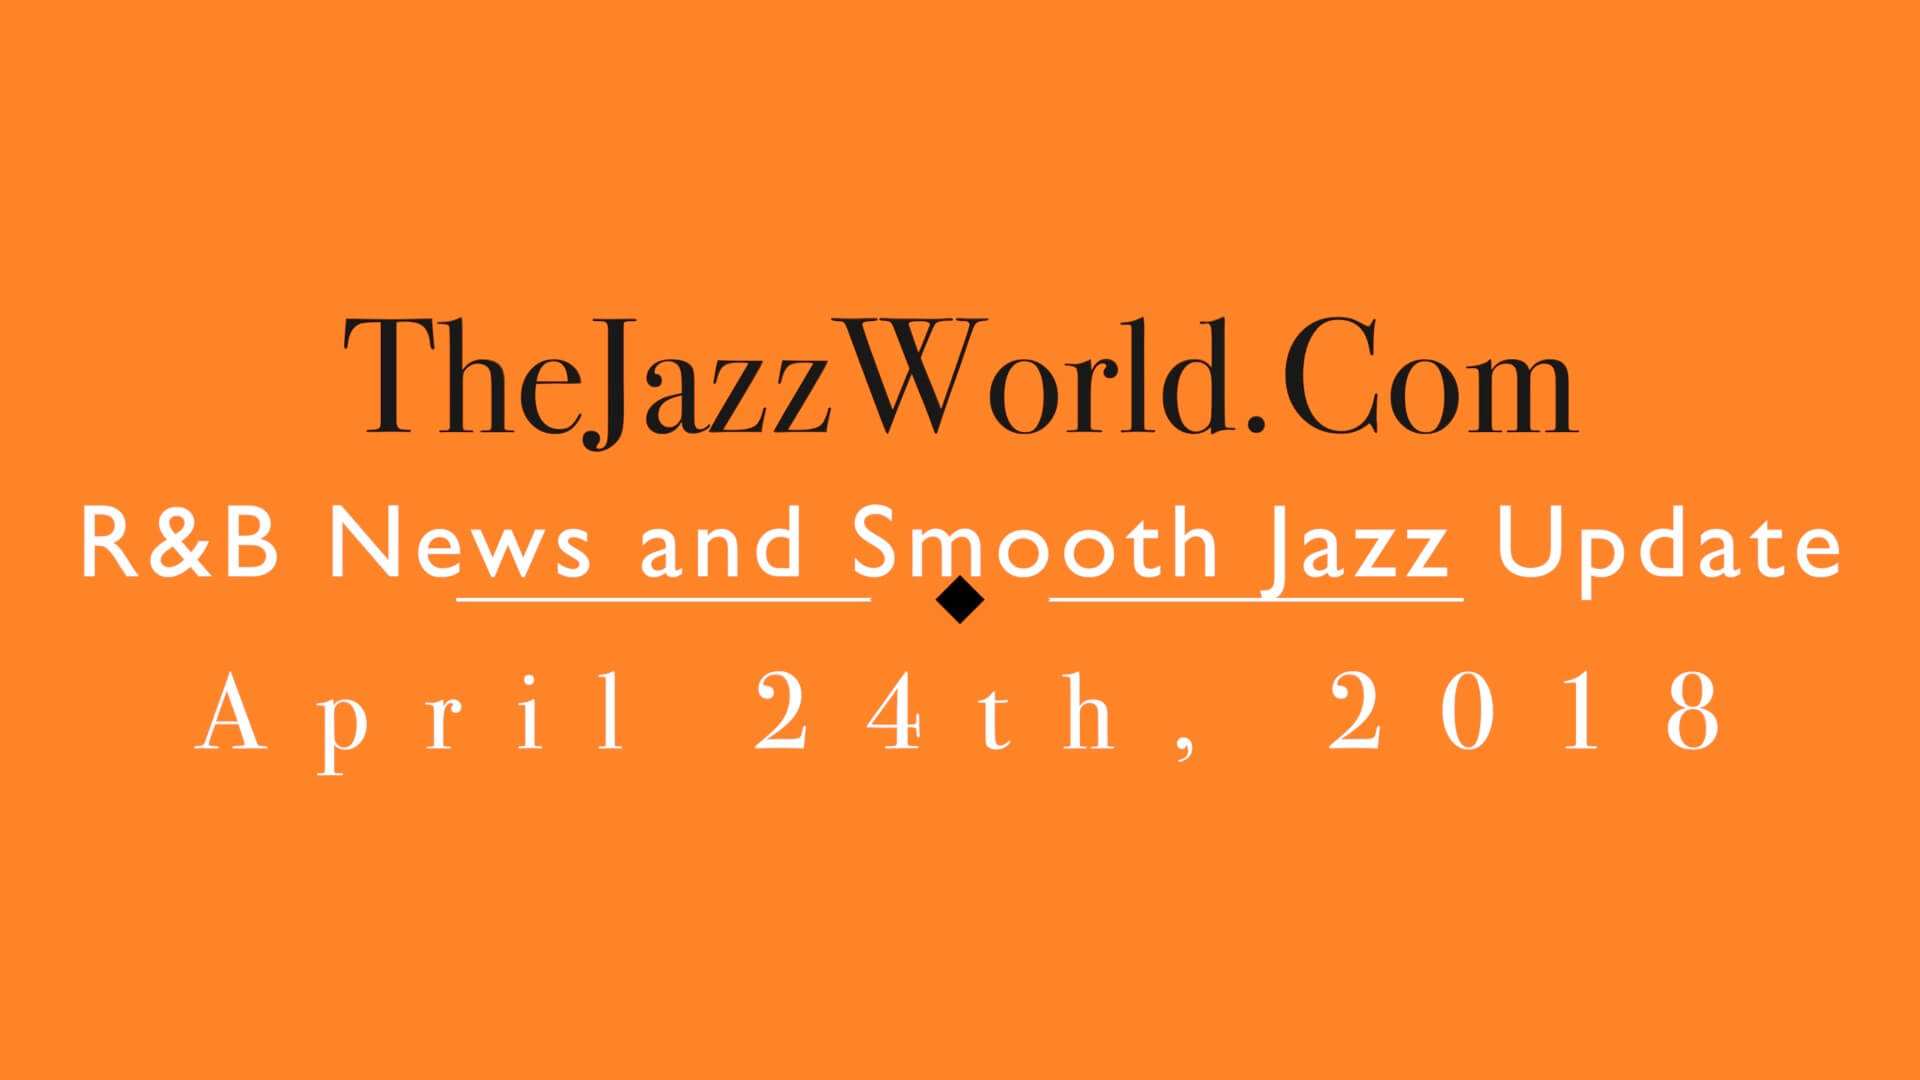 Latest R&B News and Smooth Jazz Update April 24th